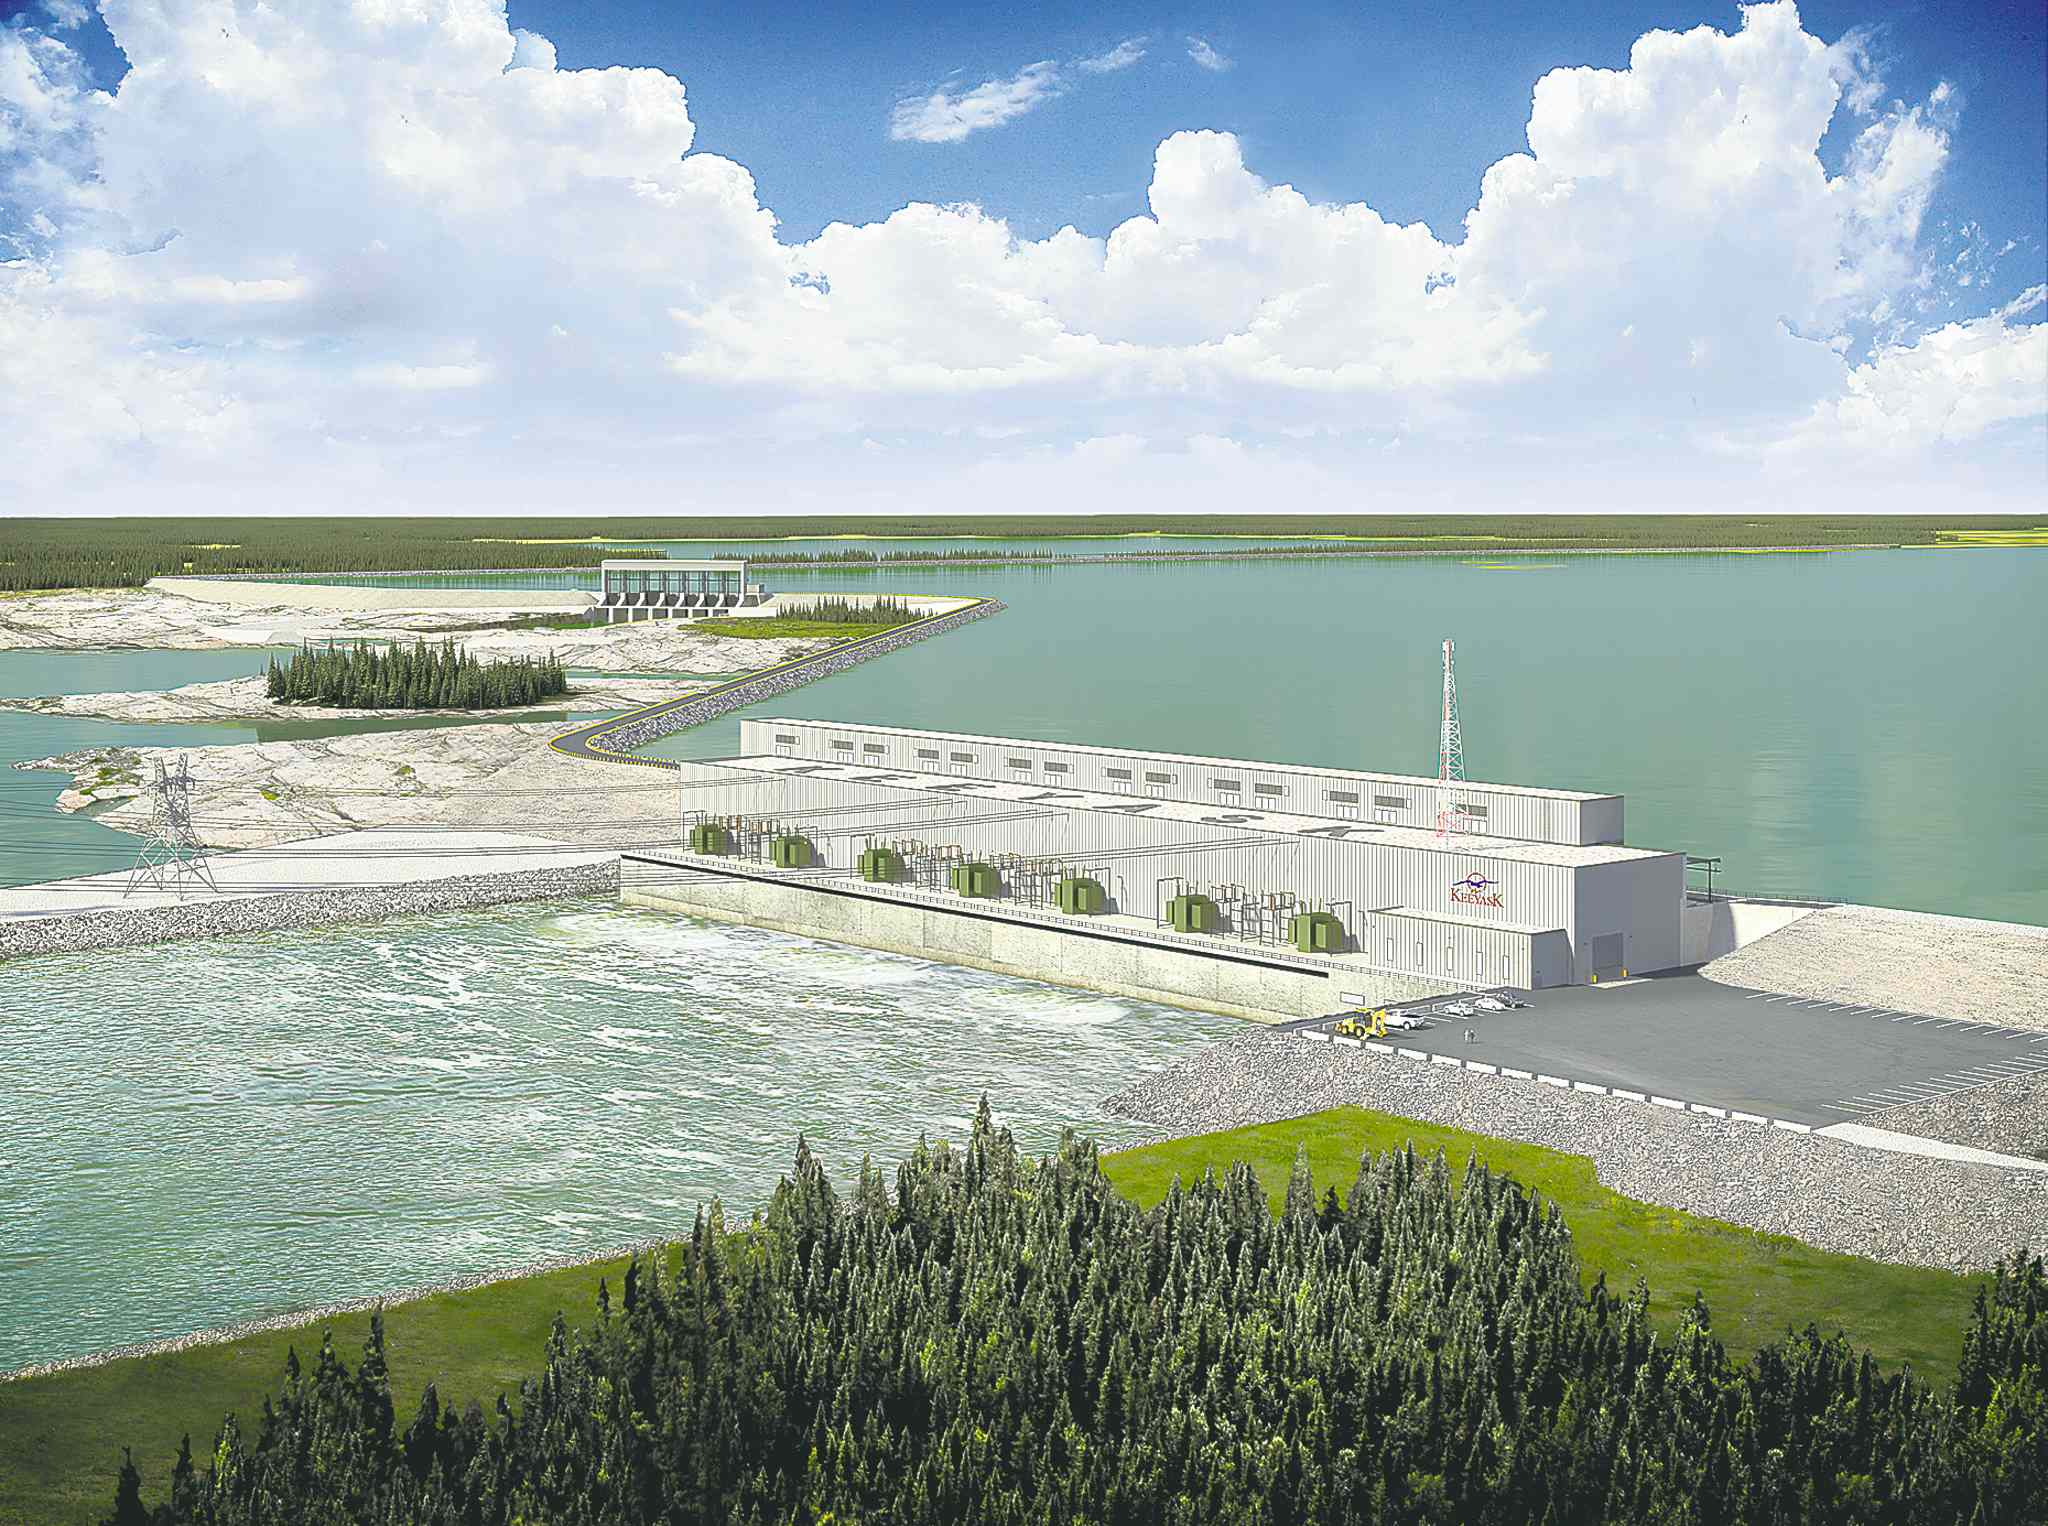 A Keeyask opponent told the PUB hearing the project is a roll of the dice, but Hydro's CEO said not building it would be risky.